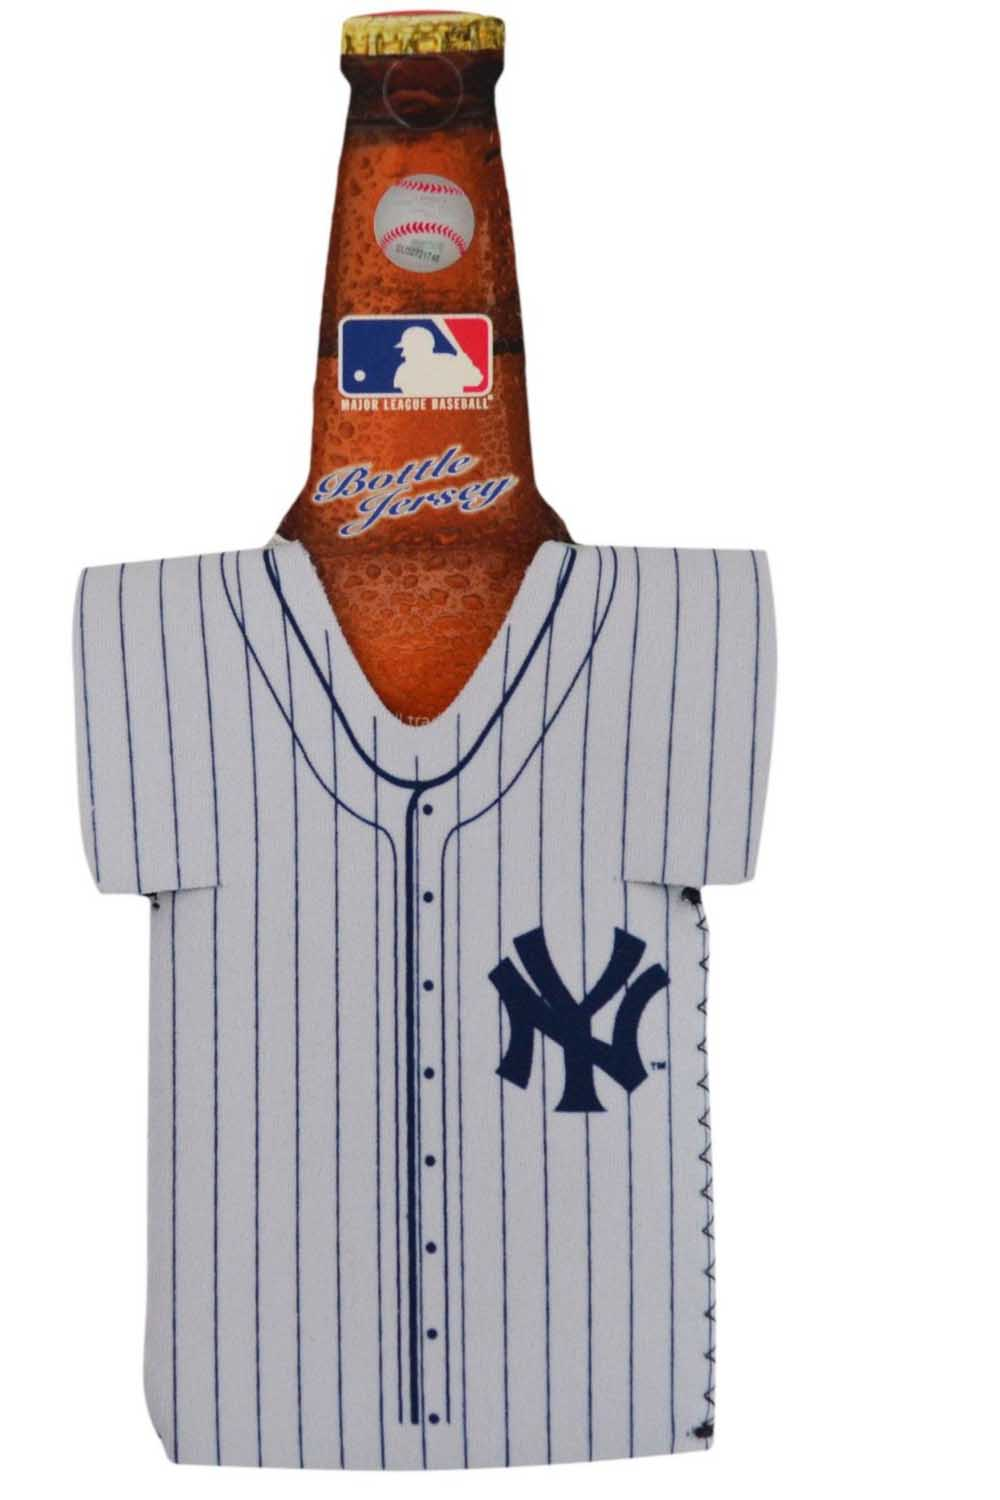 baseball jersey bottle coolers